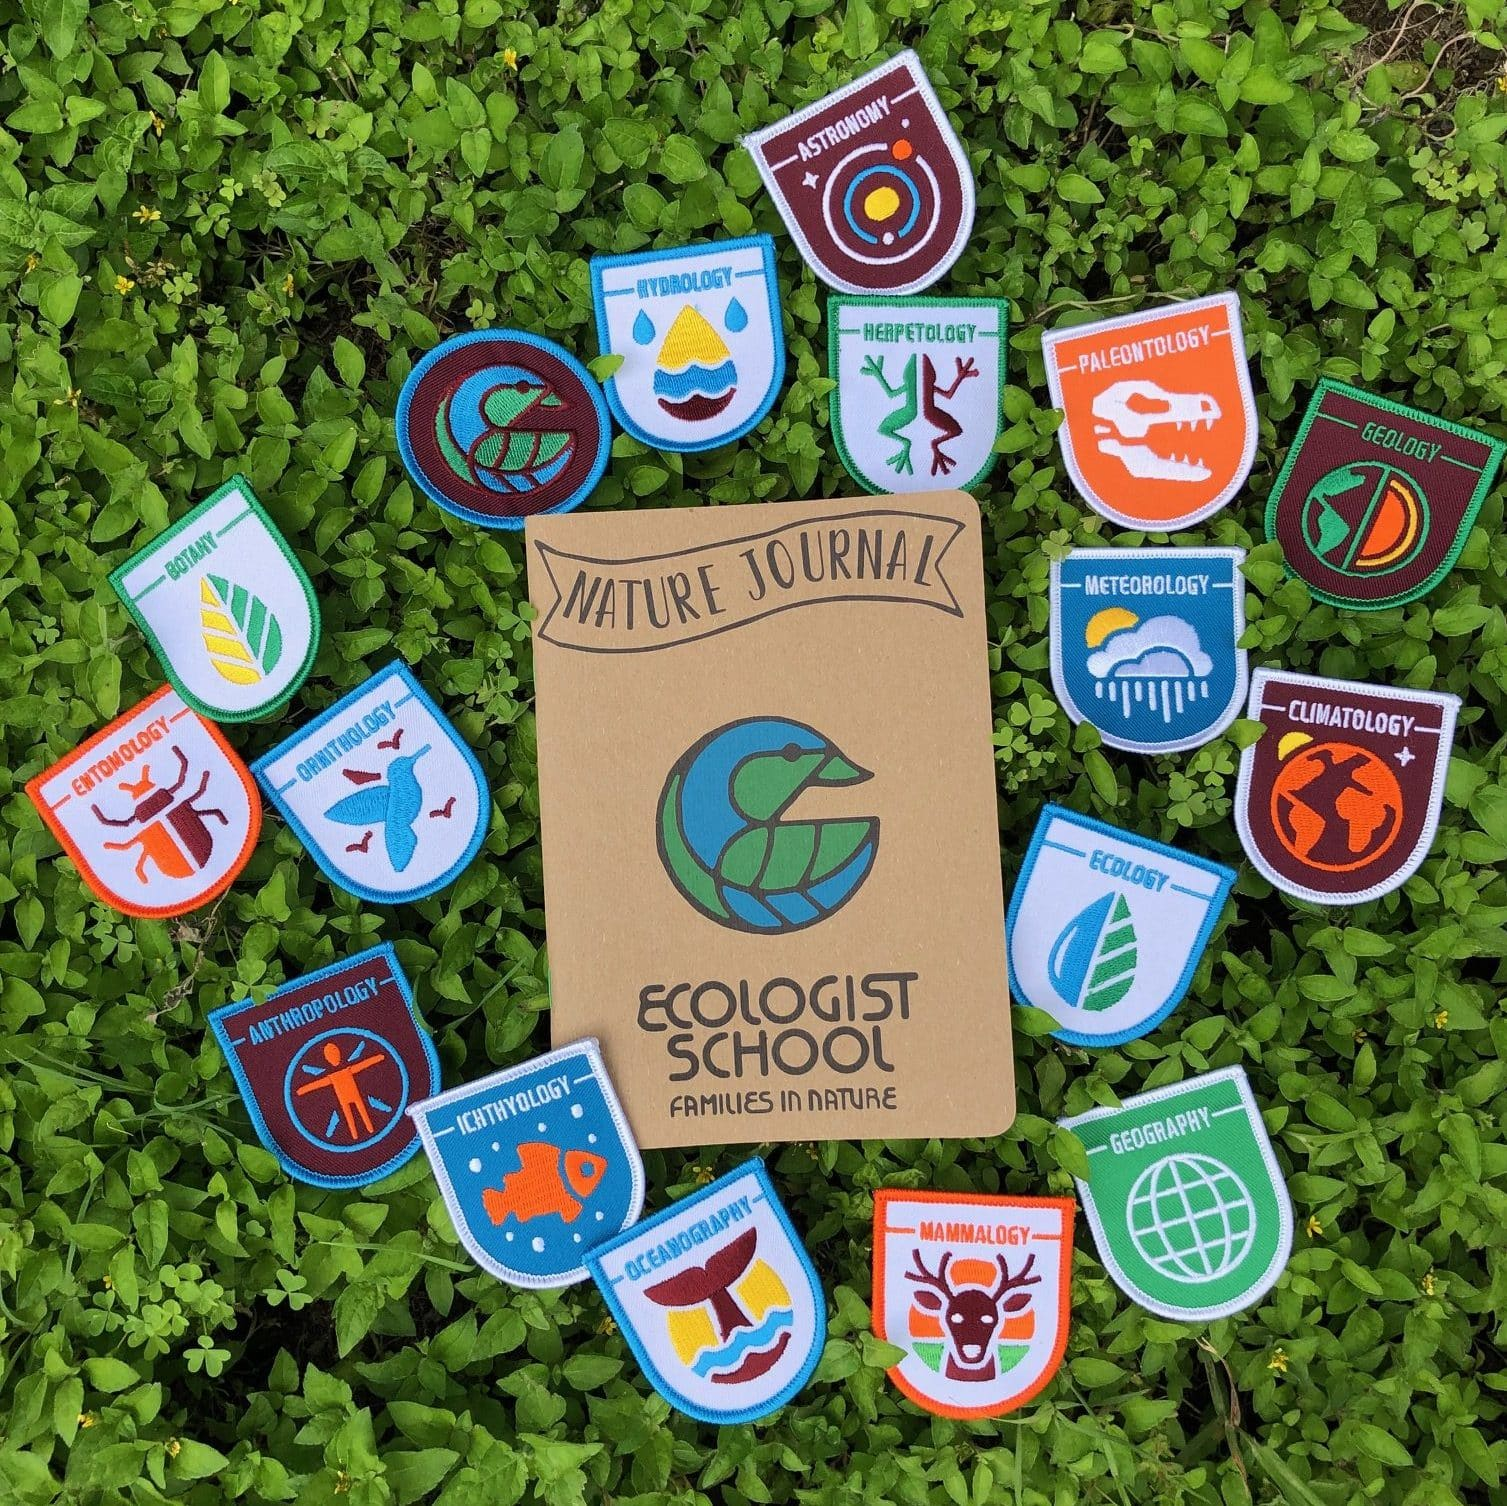 Families in Nature badges